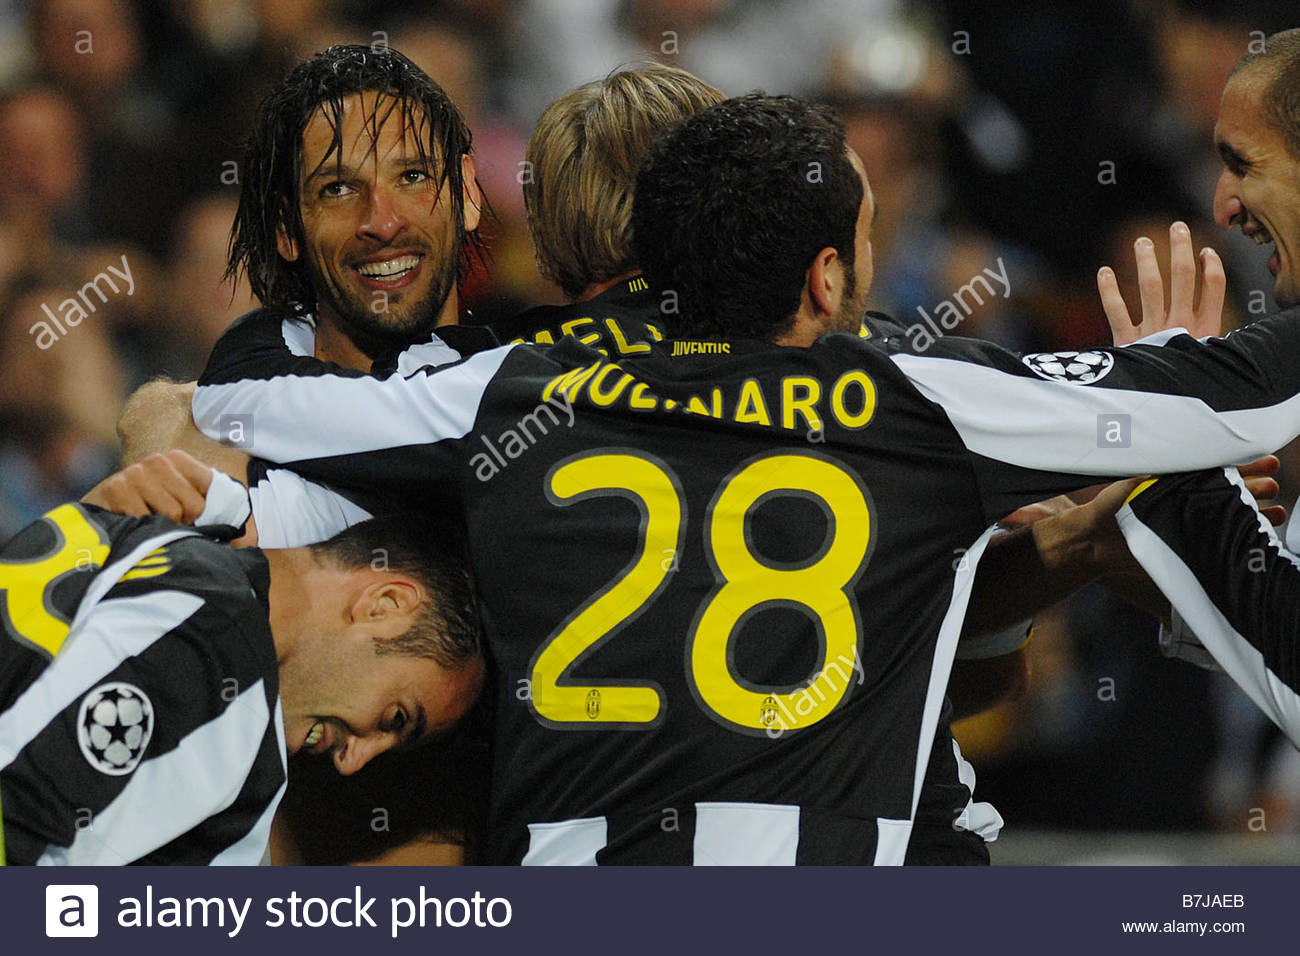 amauri hugged by his team mates'torino 21-10-2008 'football champions league 2008-2009'juventus-real madrid 2-1 - Stock Image